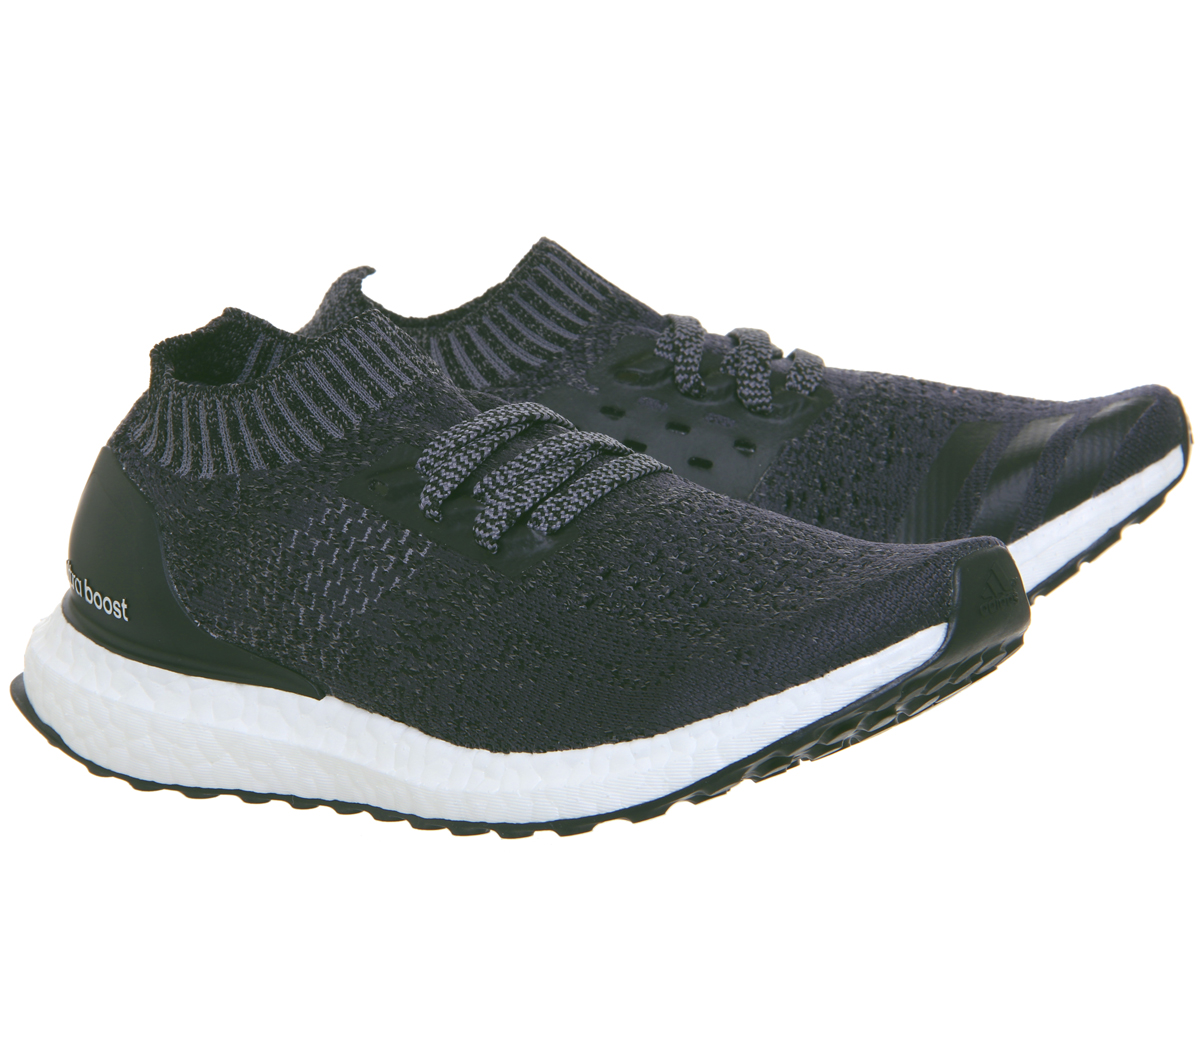 Femme Adidas CARBON Ultra Boost Uncaged Trainers CARBON Adidas F Trainers chaussures 66293a